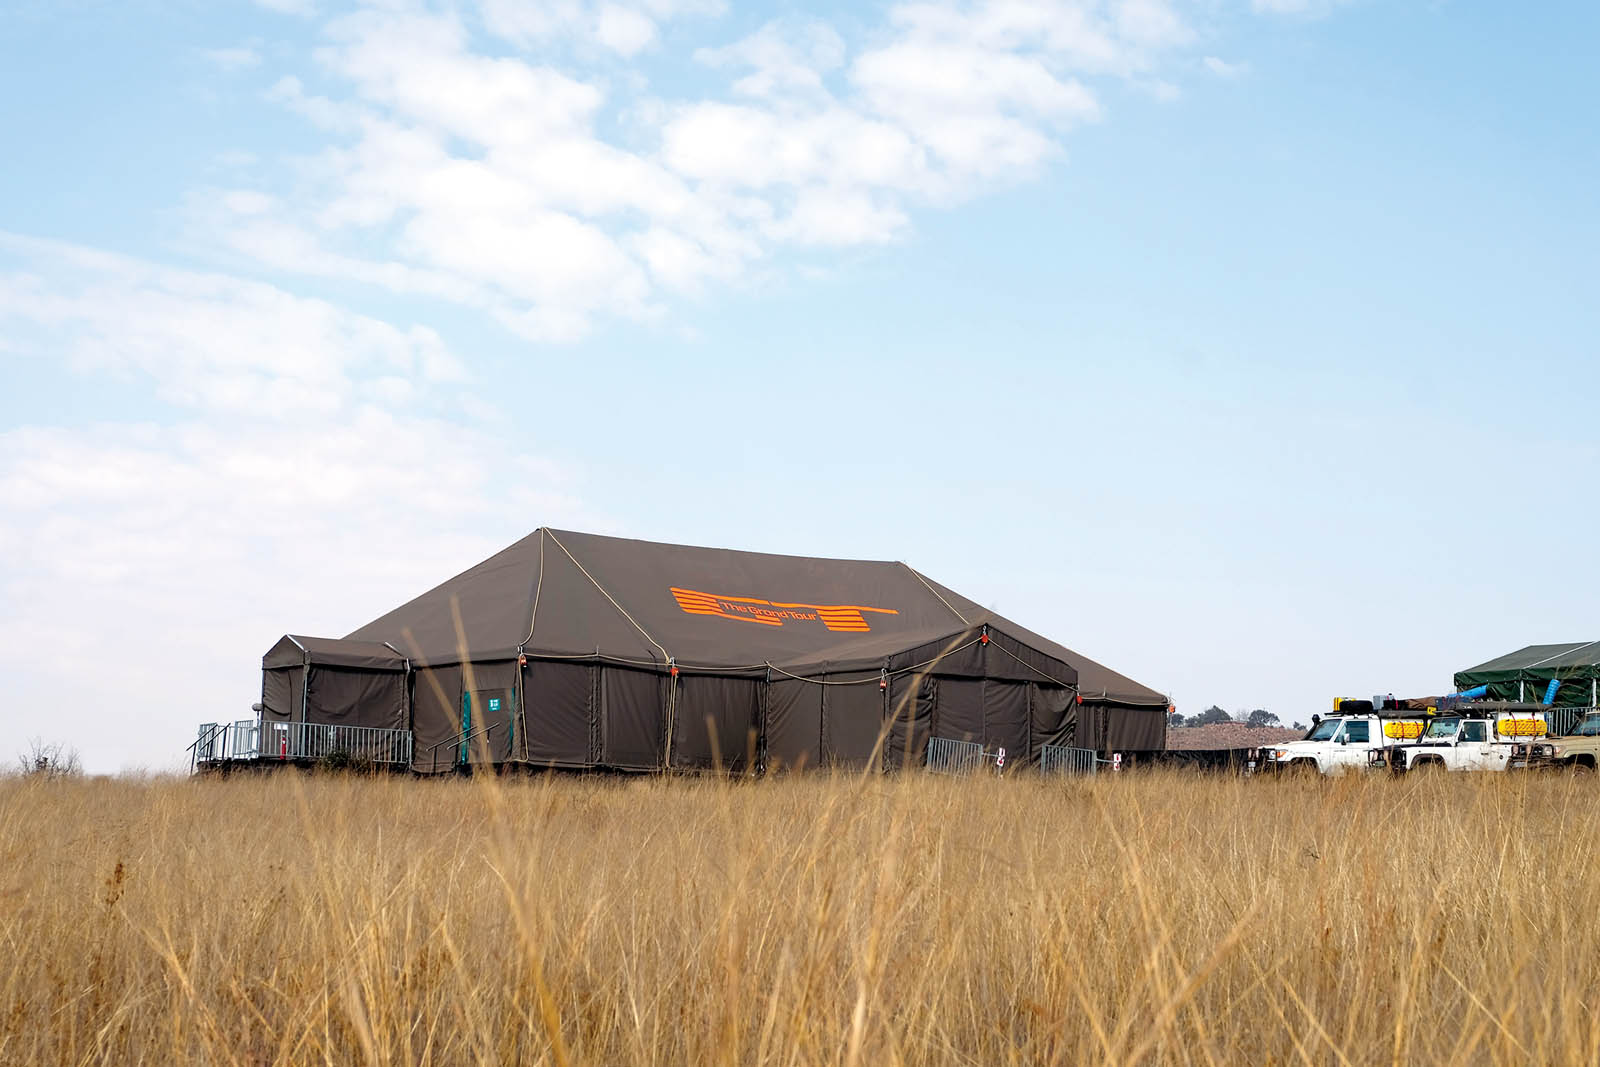 The Grand Tour tent